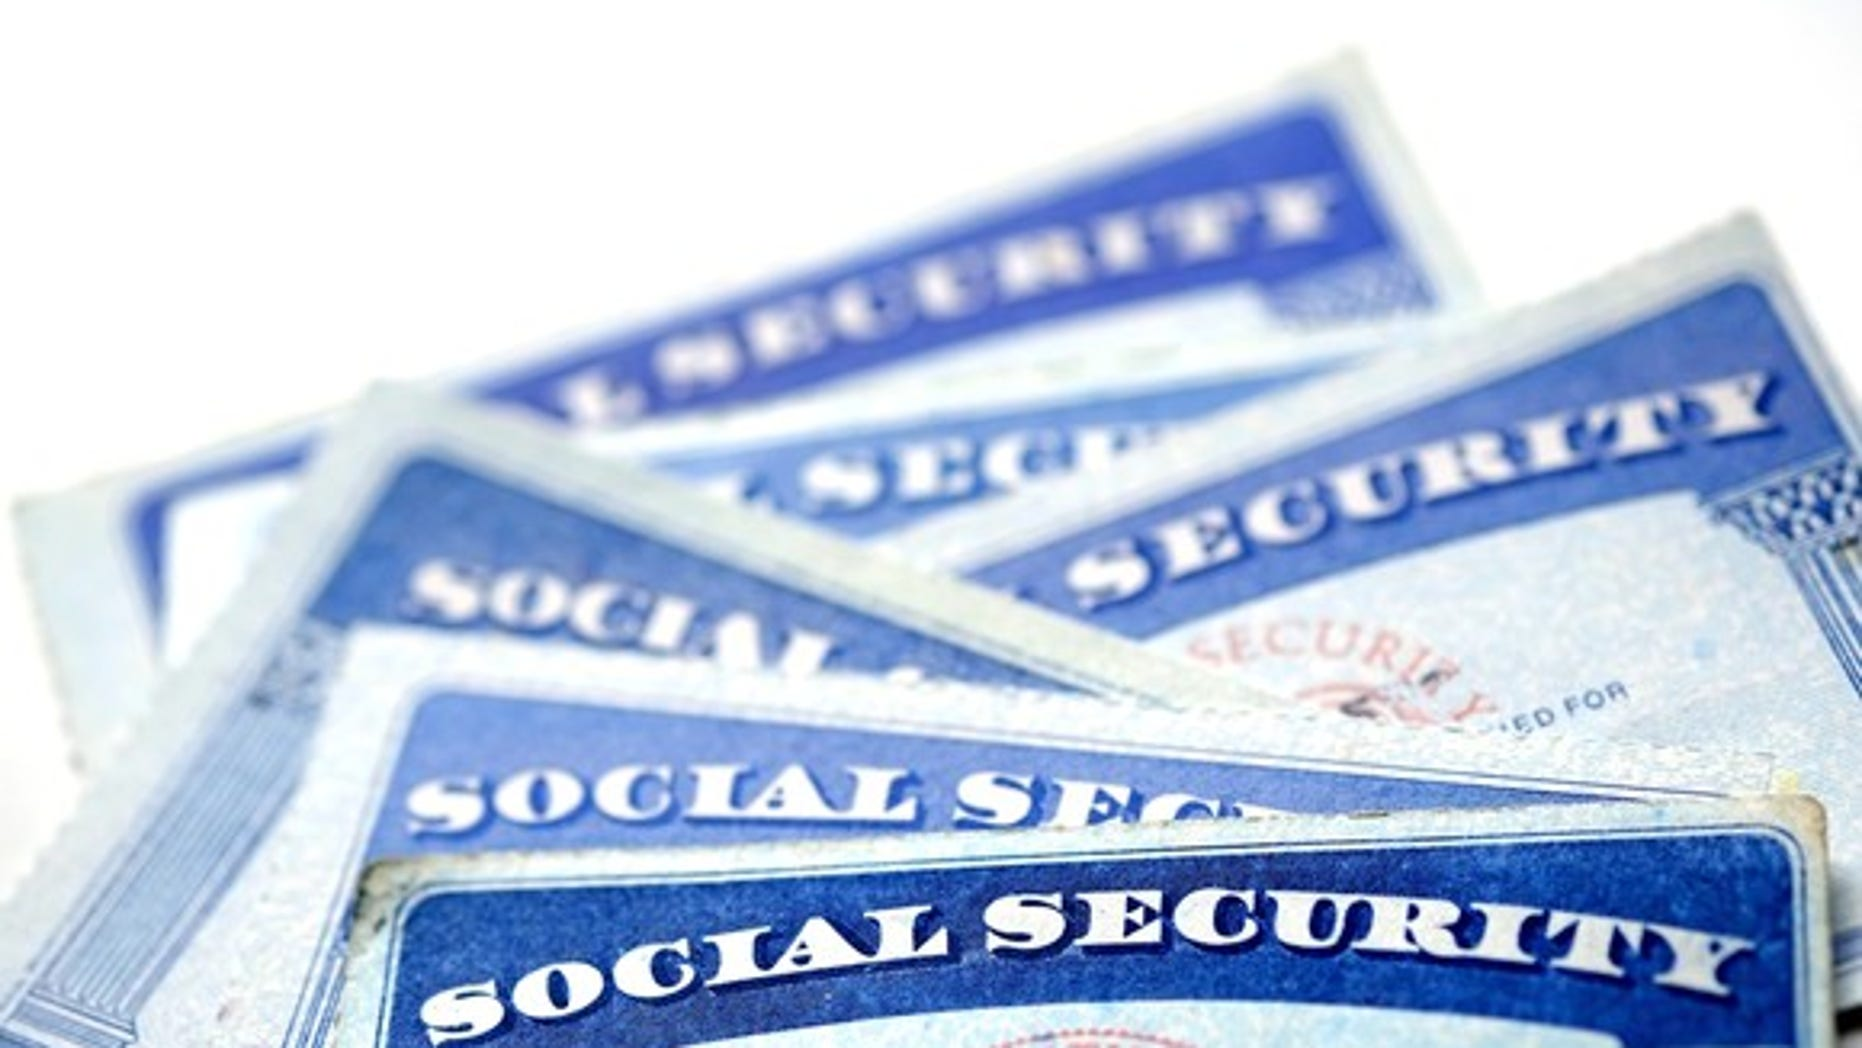 Following an executive order from Democratic Gov. Jay Inslee, the state's Department of Licensing no longer quickly confirms identity through Social Security numbers.